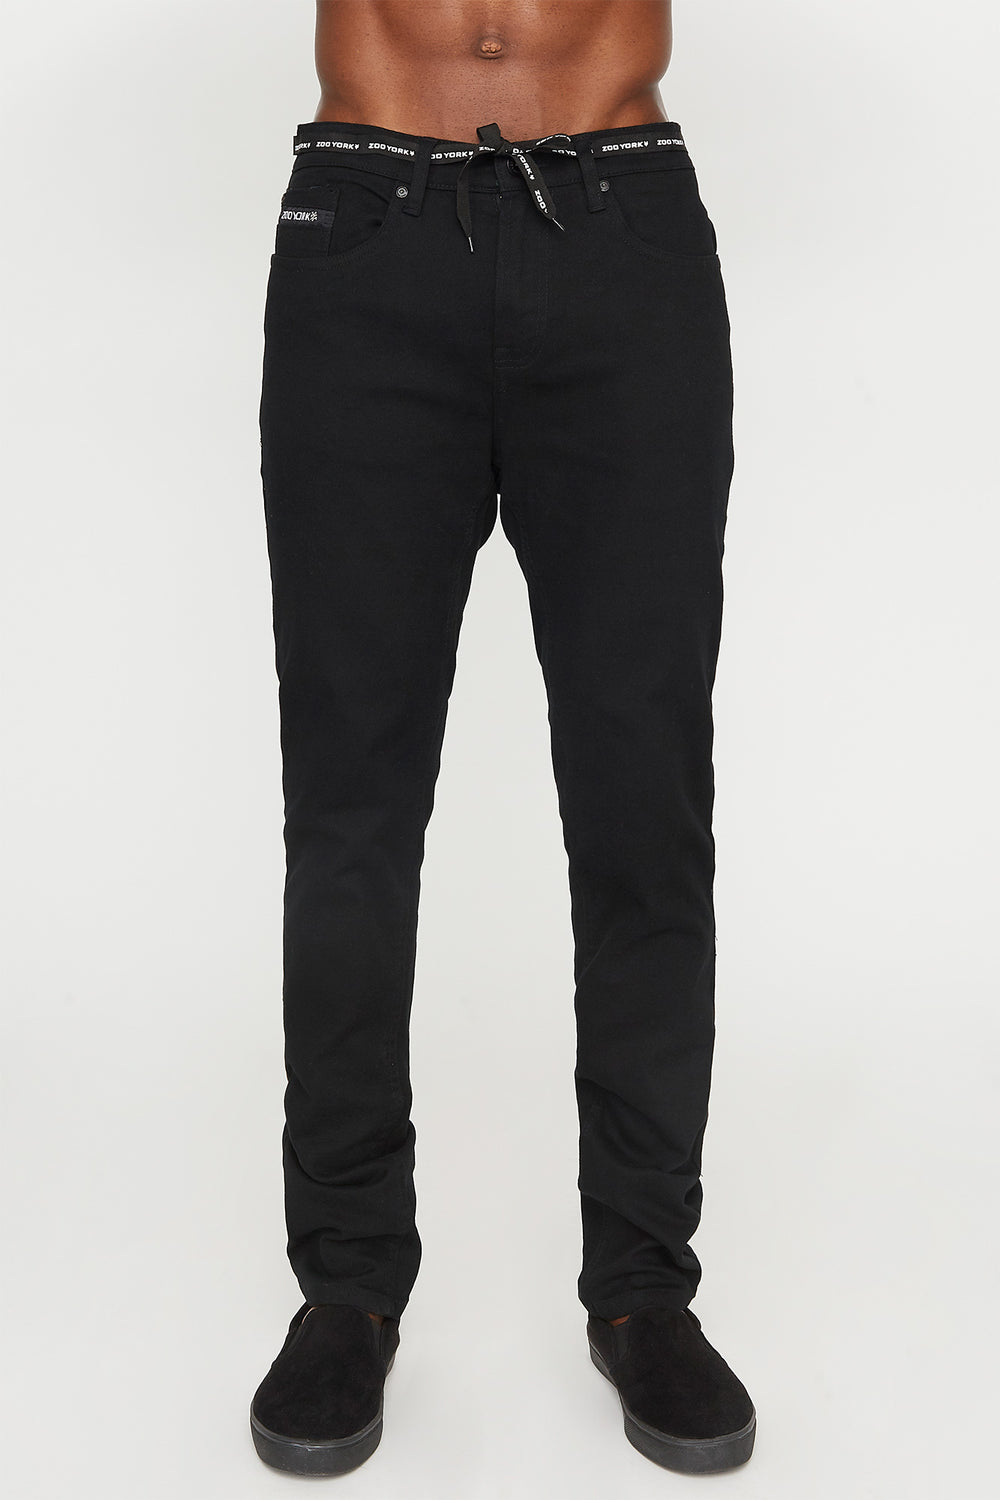 Zoo York Mens Skinny Jeans Black